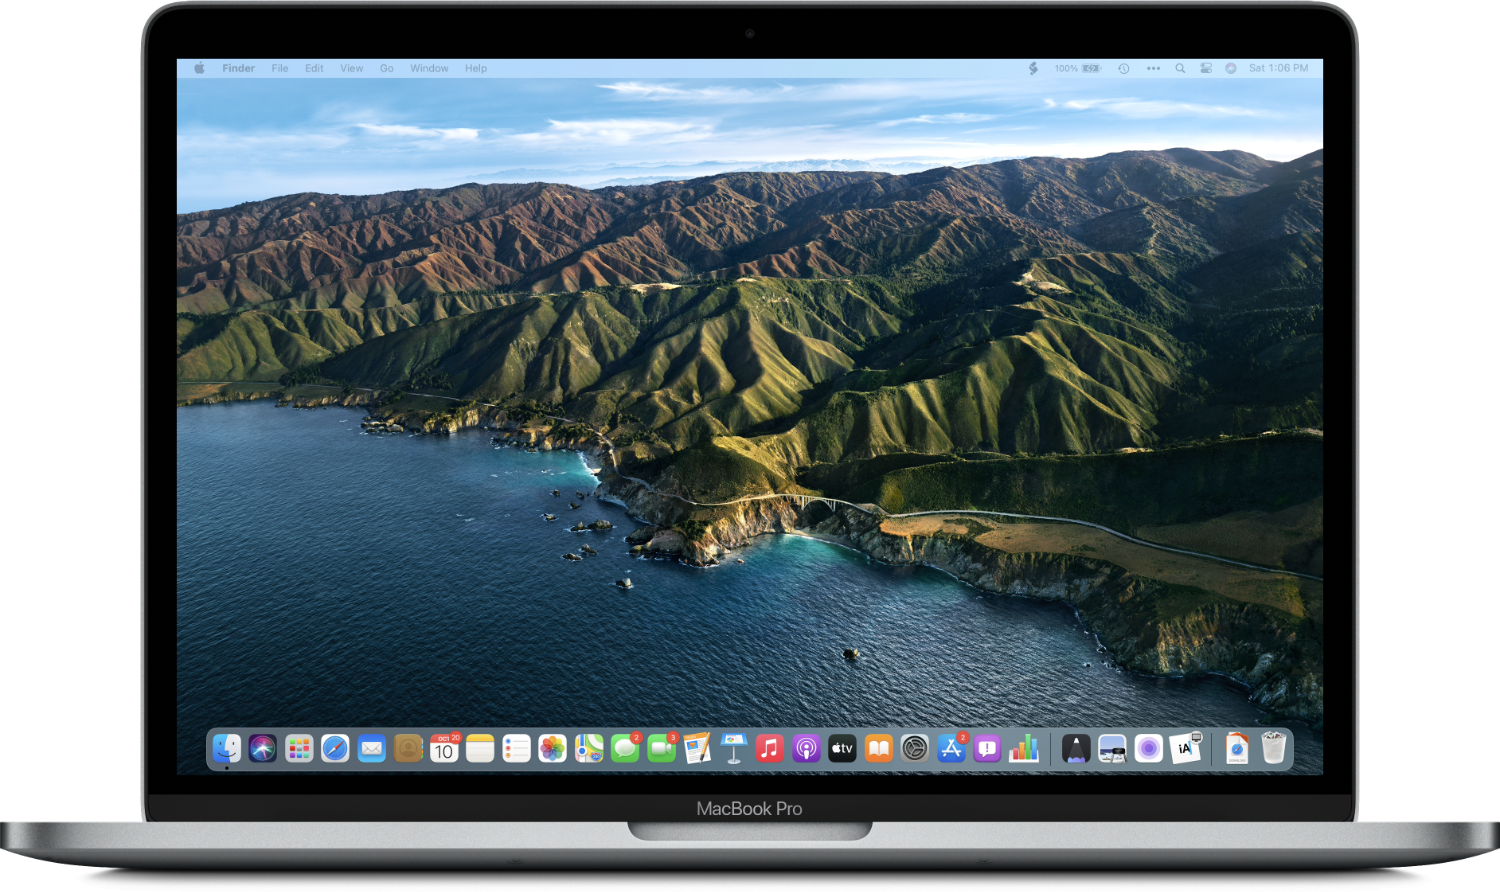 The new desktop features greater translucency and a Dock that floats above the bottom of the screen.